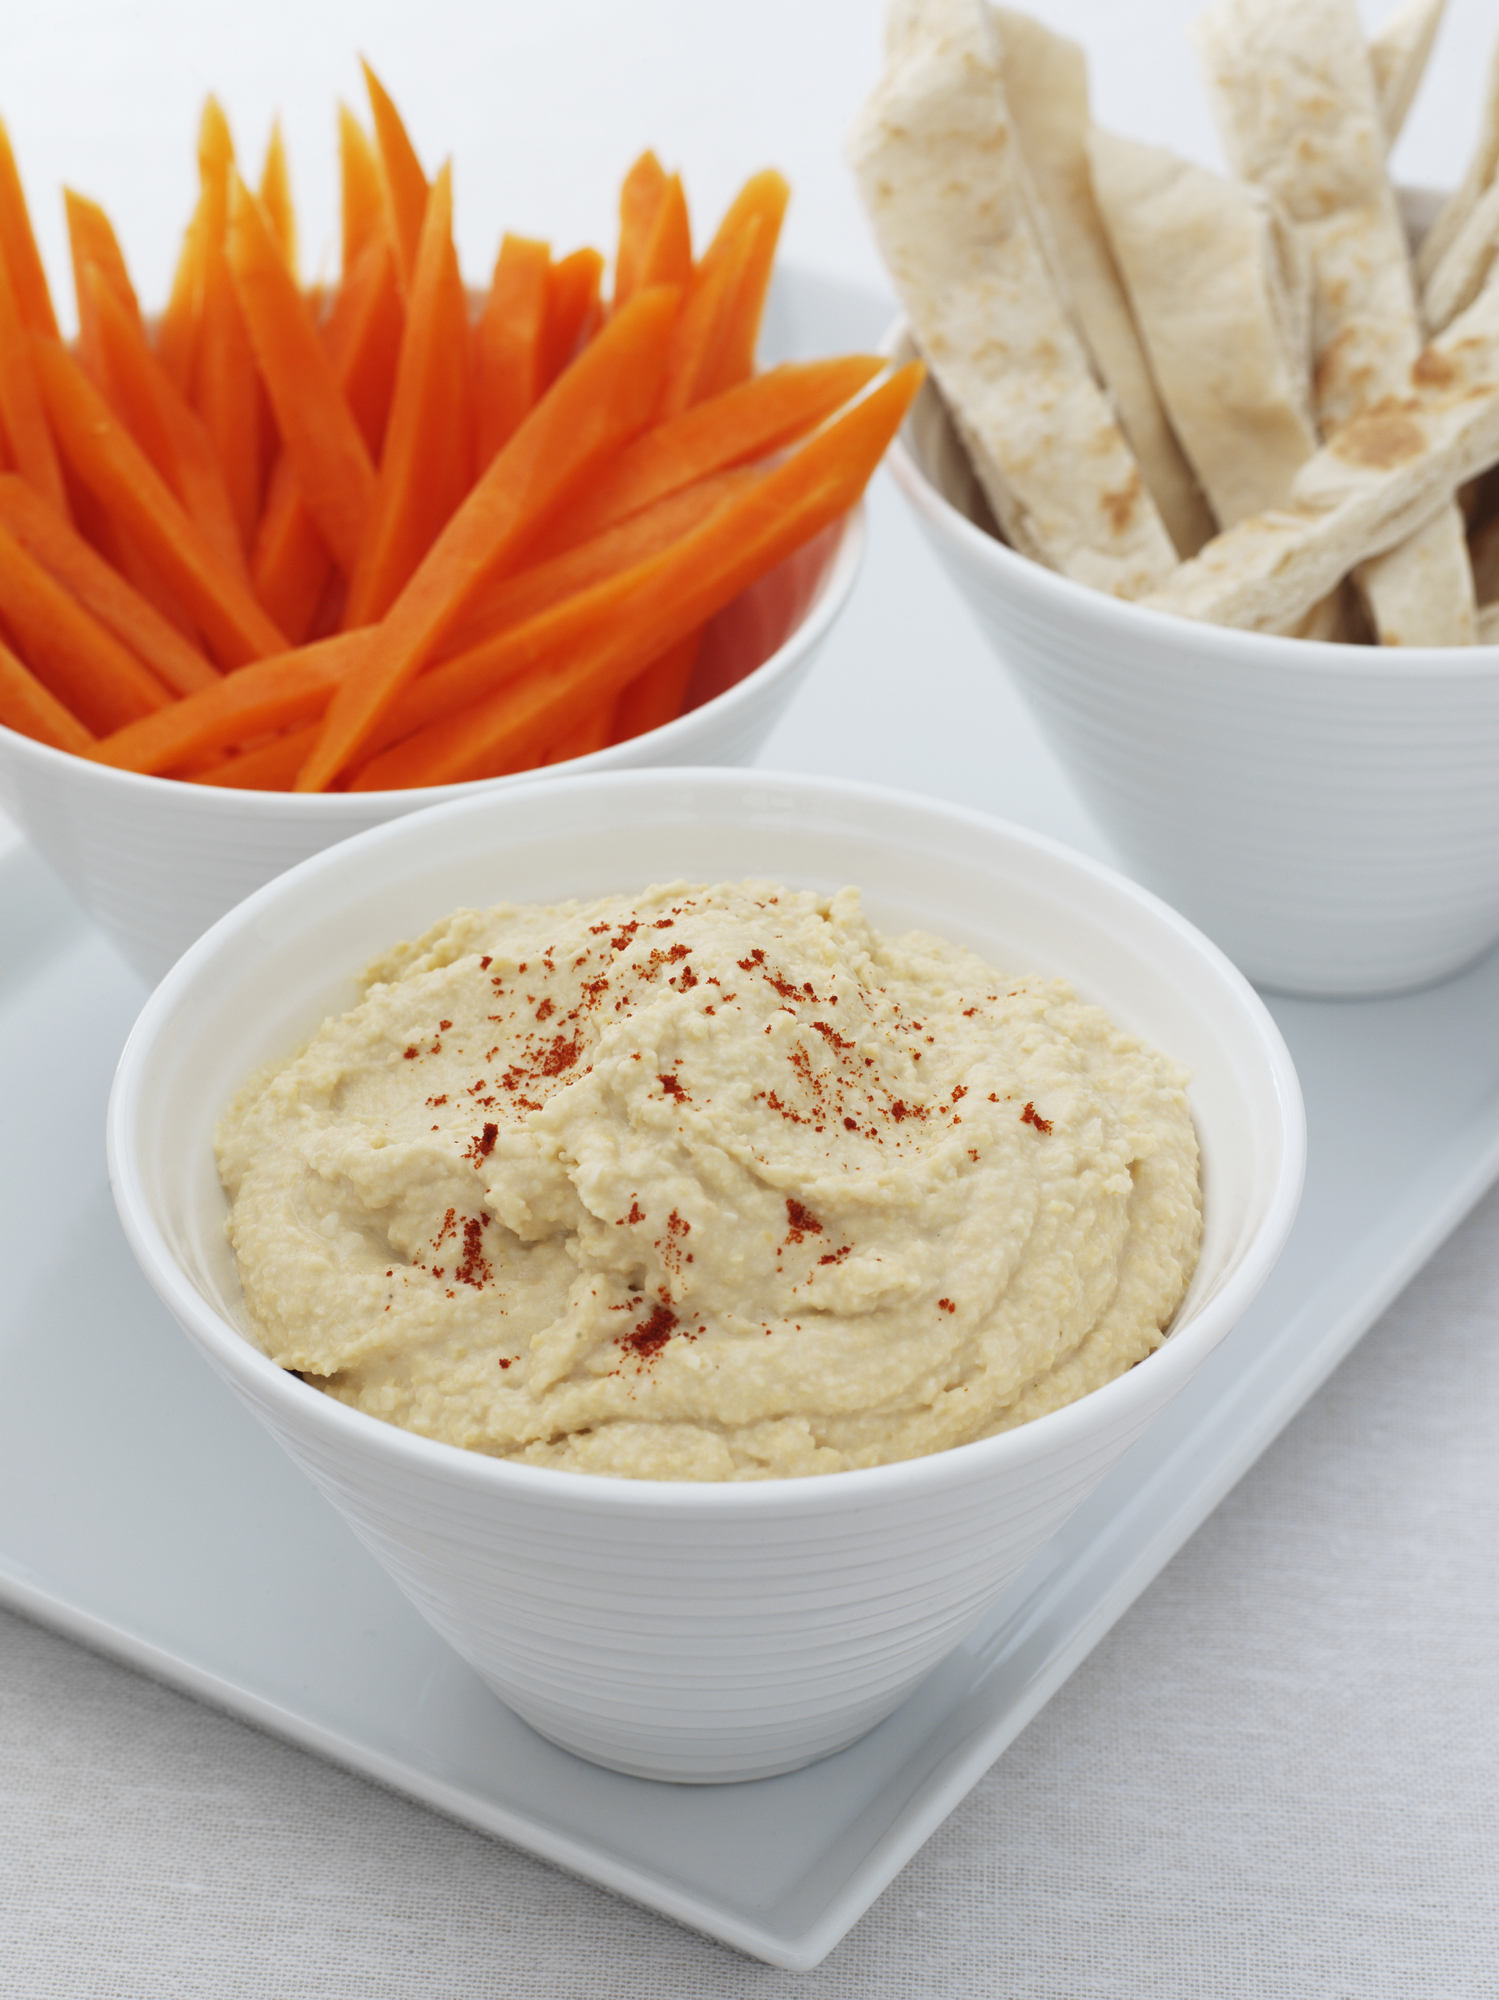 Hummus Topped With Pine Nuts Recalled Over Listeria Fears